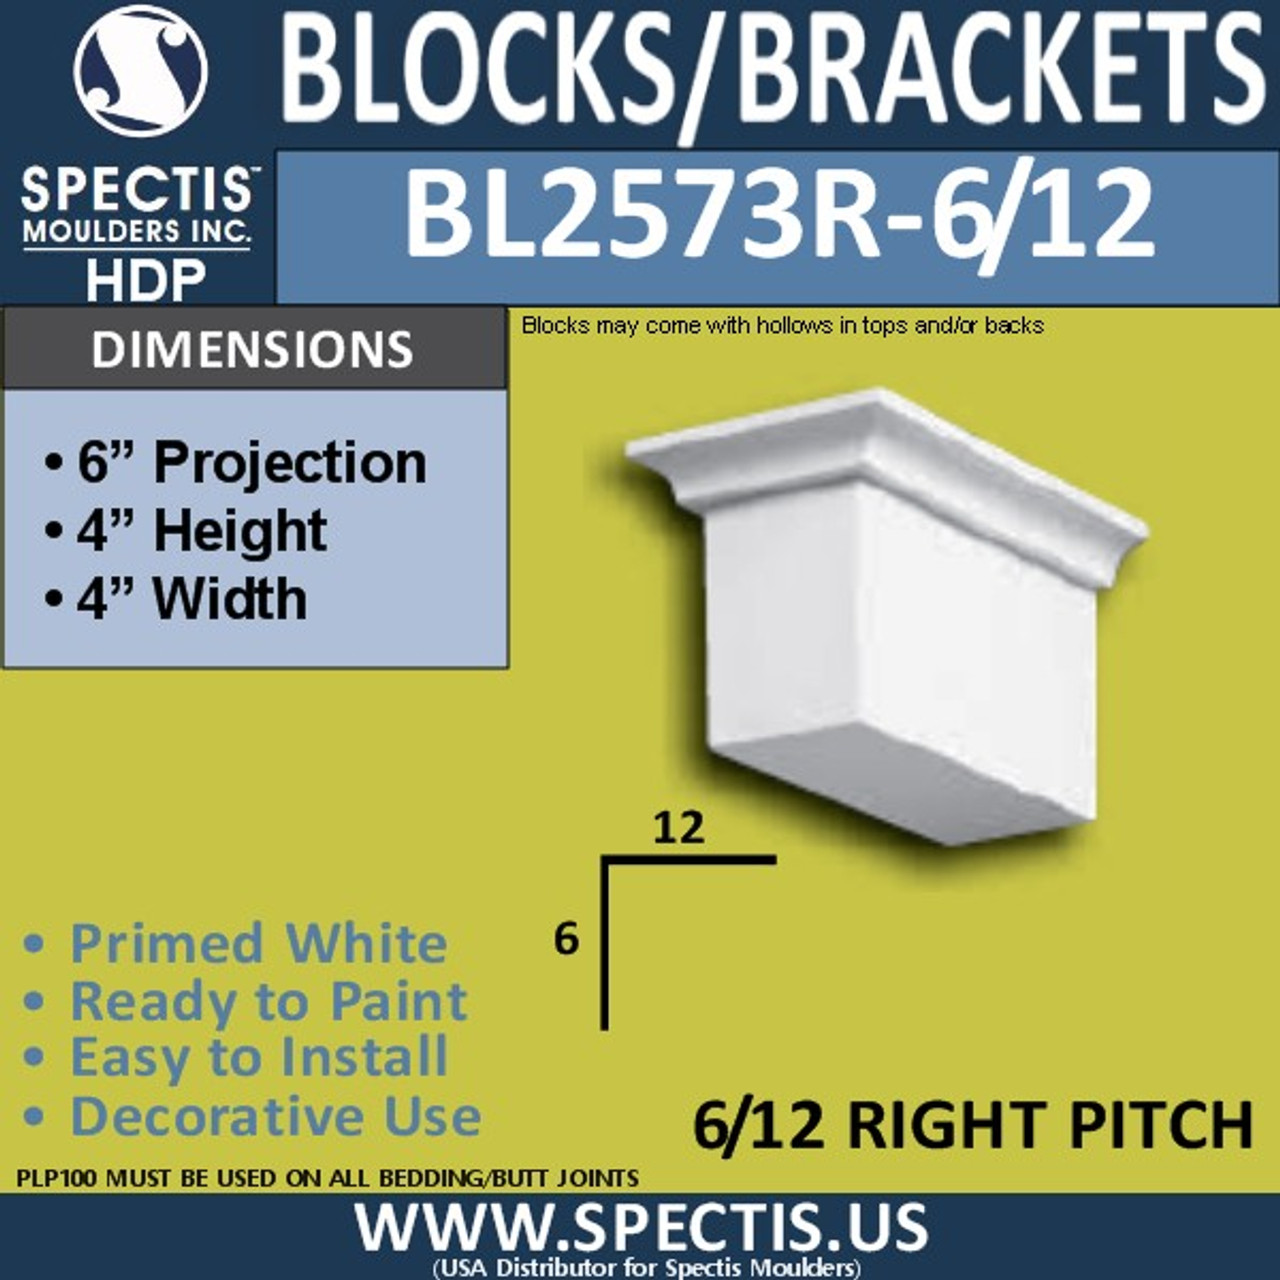 "BL2573R-6/12 Pitch Eave Bracket 3.5""W x 4""H x 6"" P"